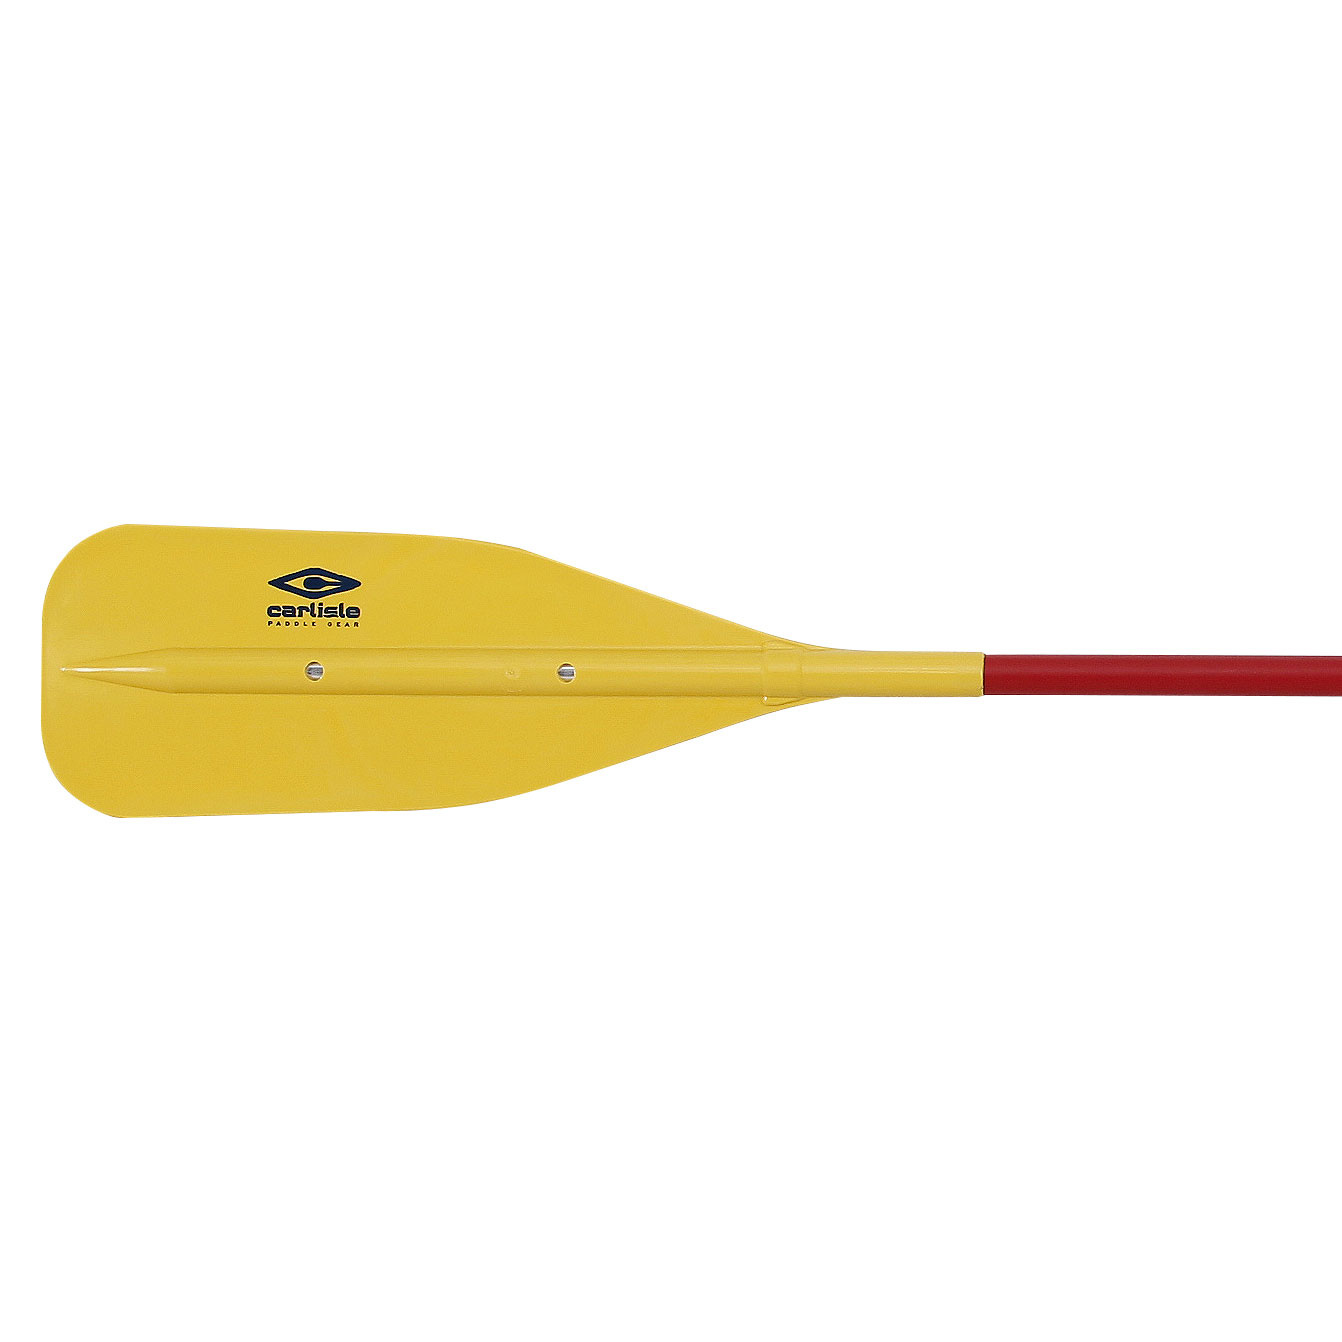 "Carlisle Carlisle Outfitter Paddle 60"" yellow/red"